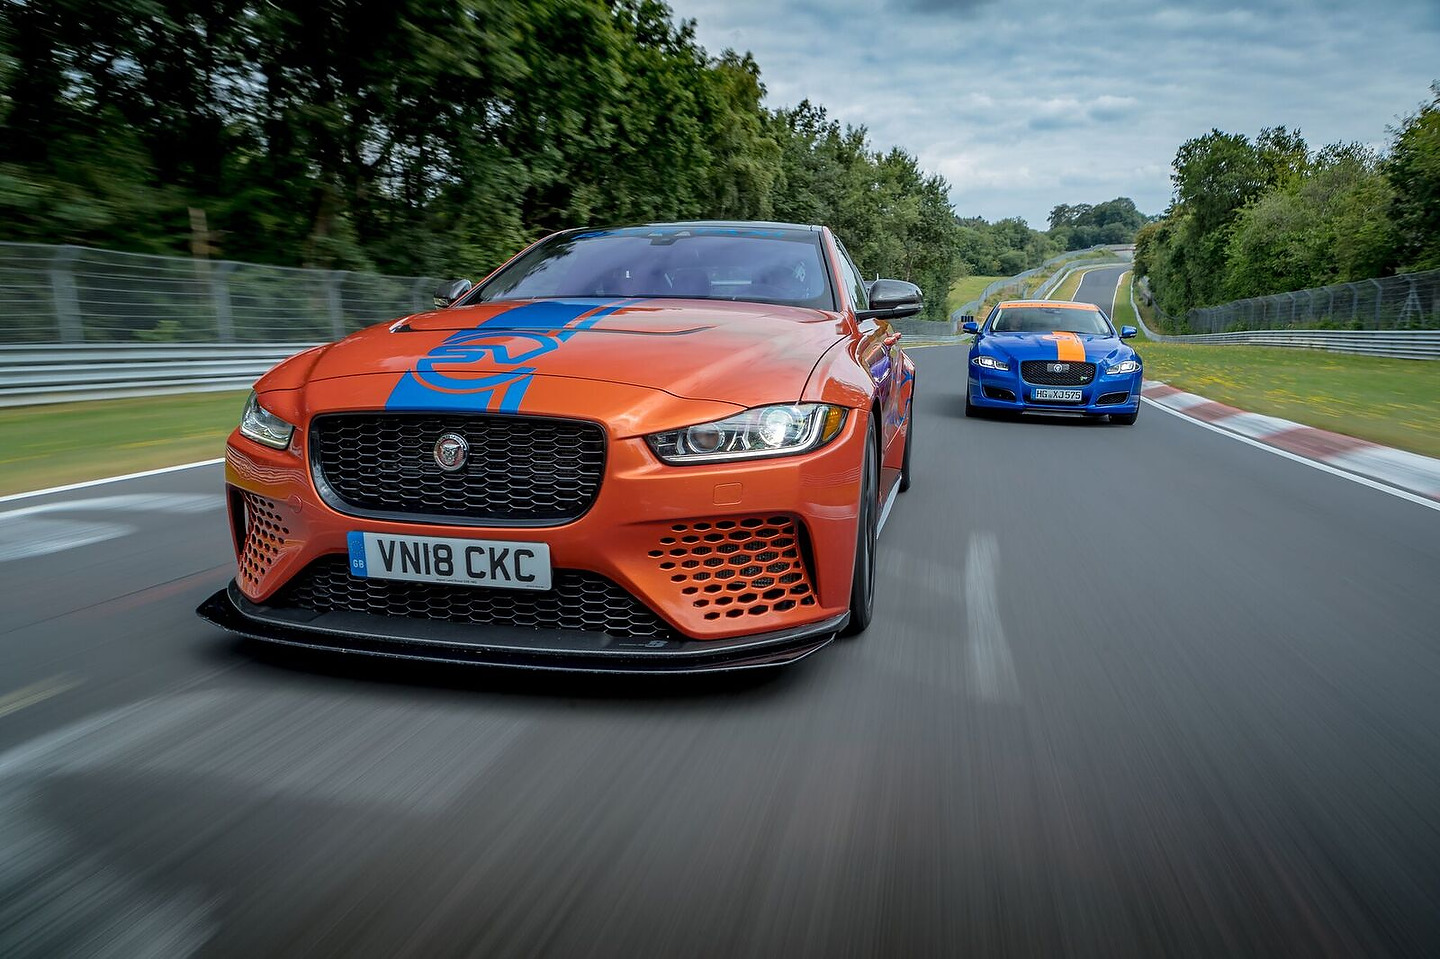 Jaguar XE SV Project 8 NŸrburgring Race Taxi